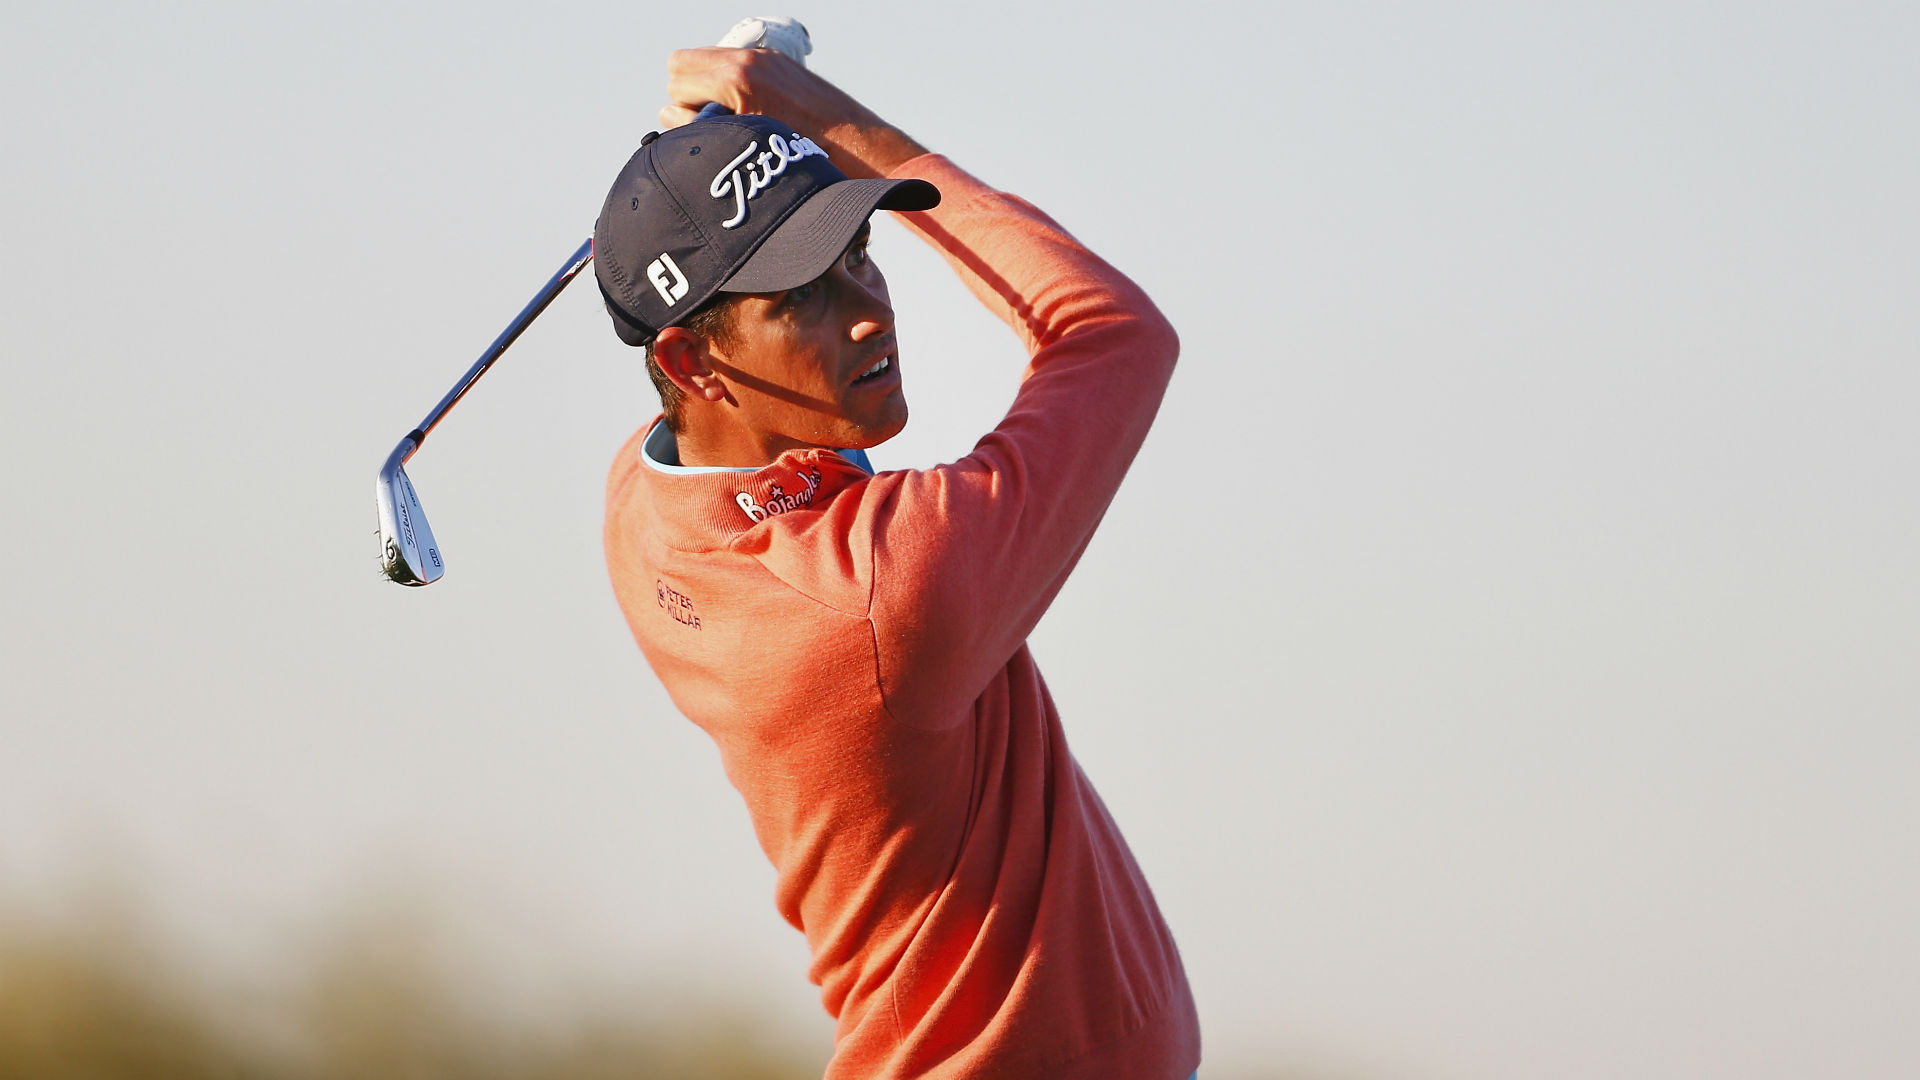 Fowler holds one-shot lead at Phoenix Open